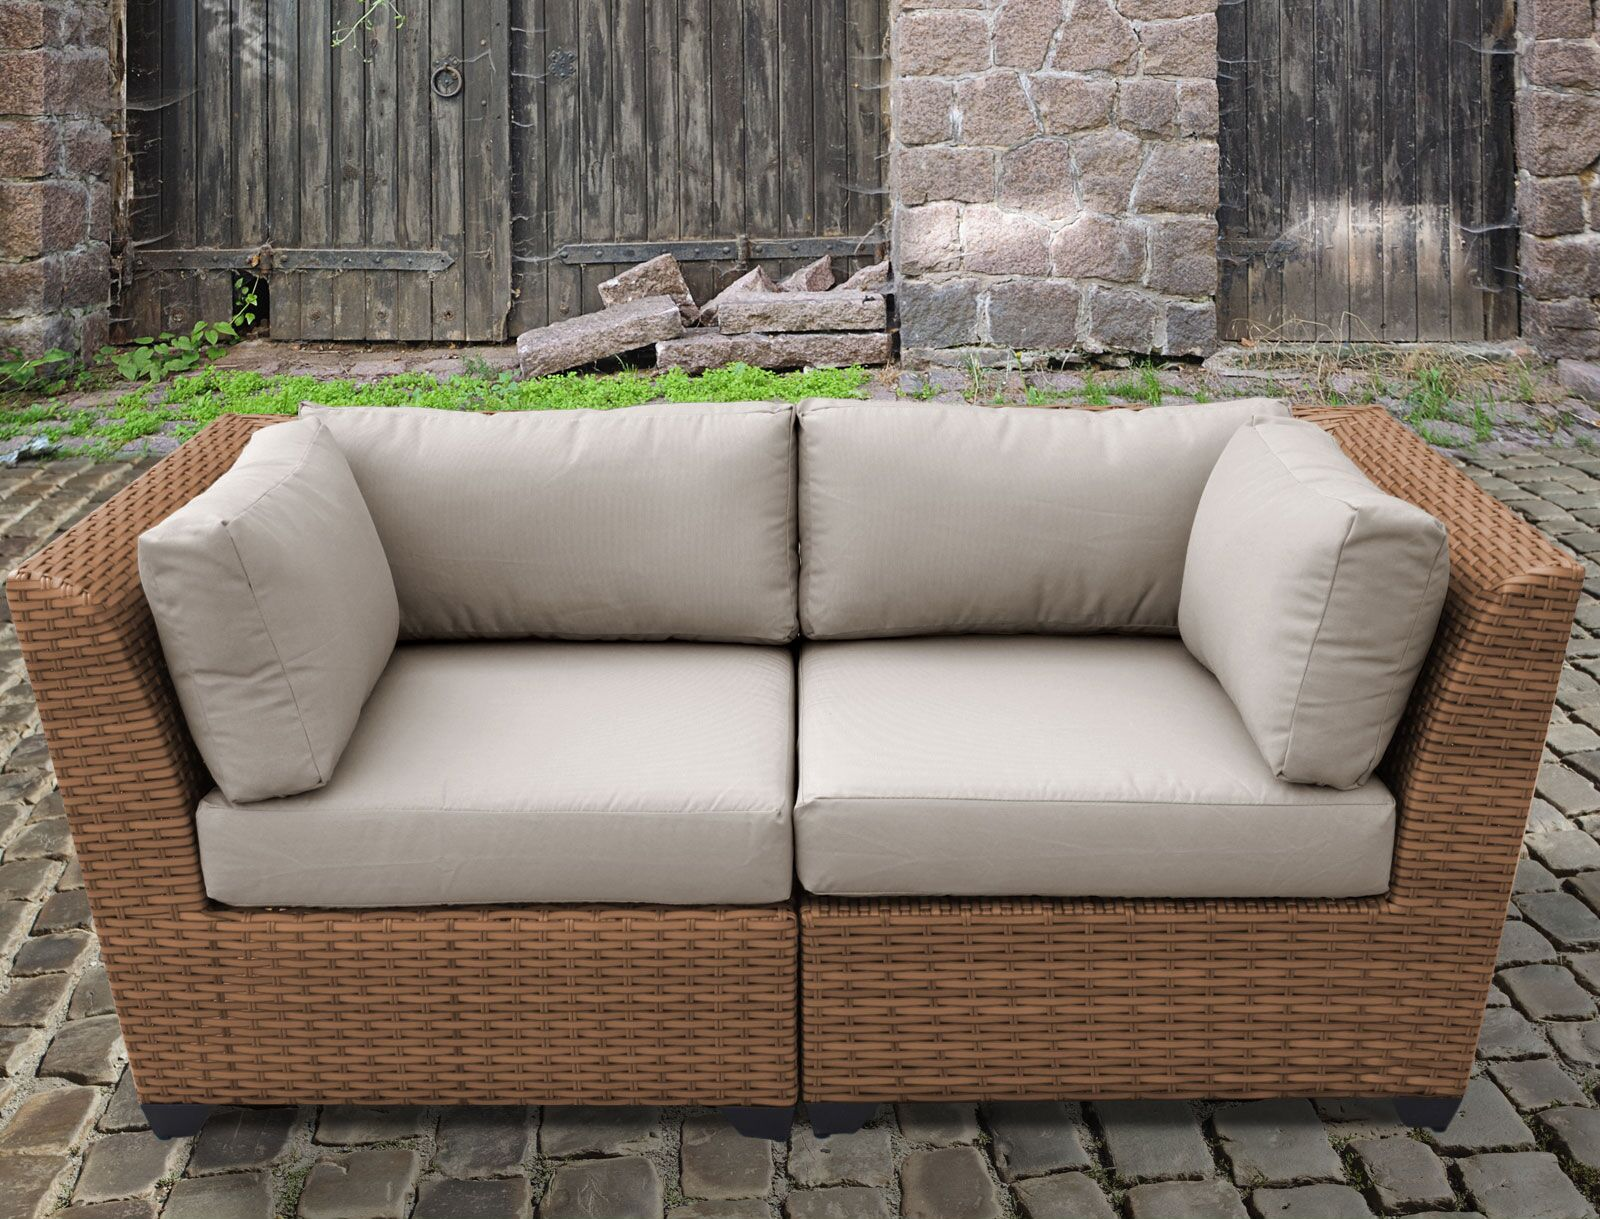 East Village Loveseat with Cushion Color: Beige